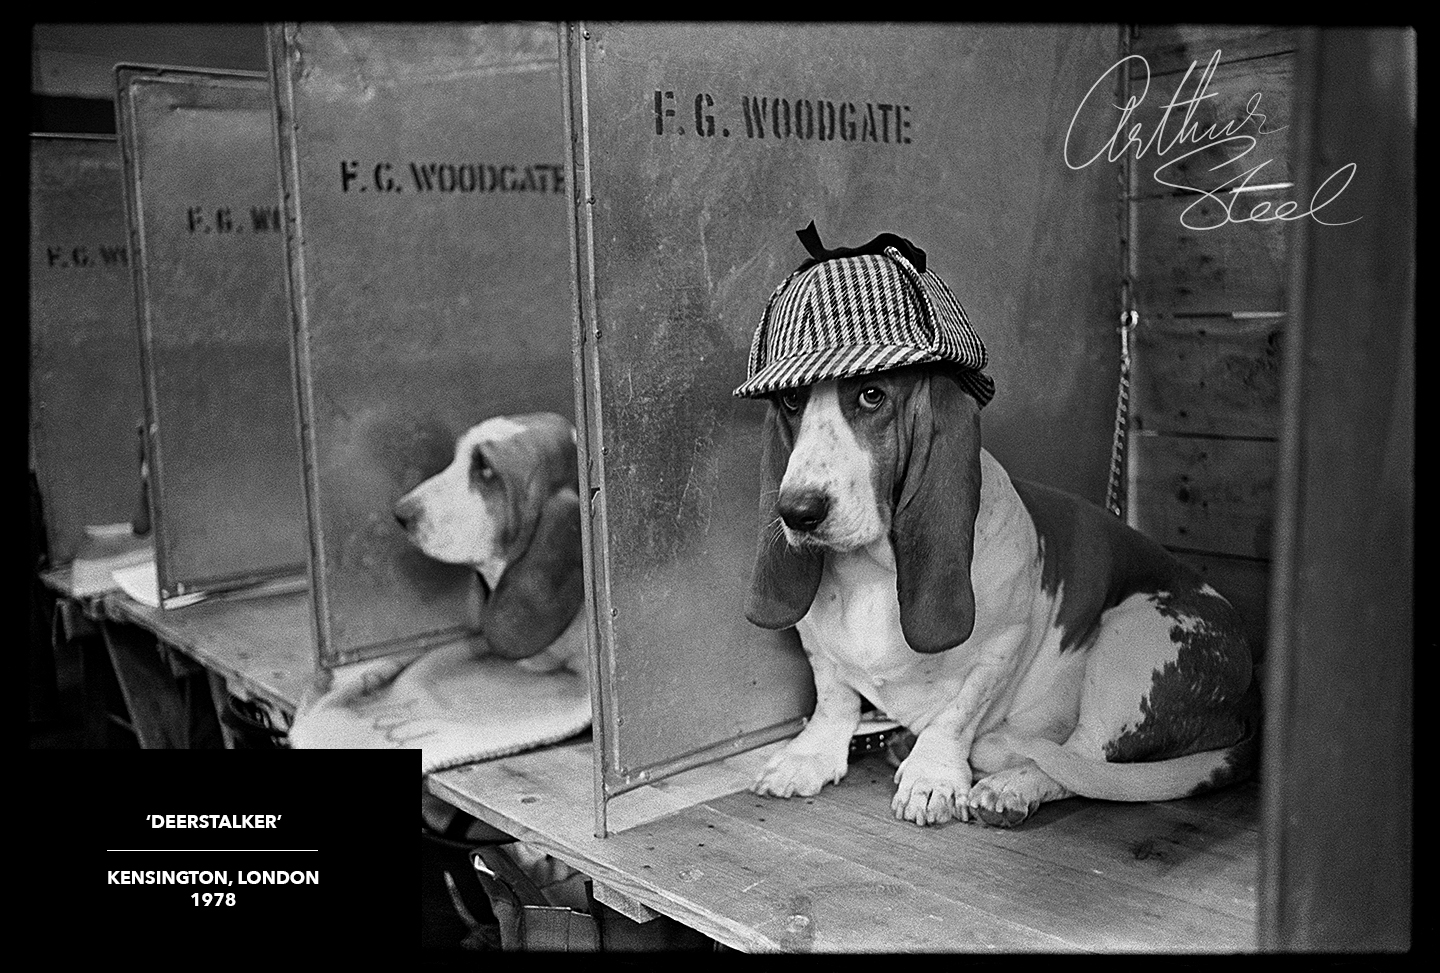 rare photograph of a bassett hound wearing a deerstalker hat